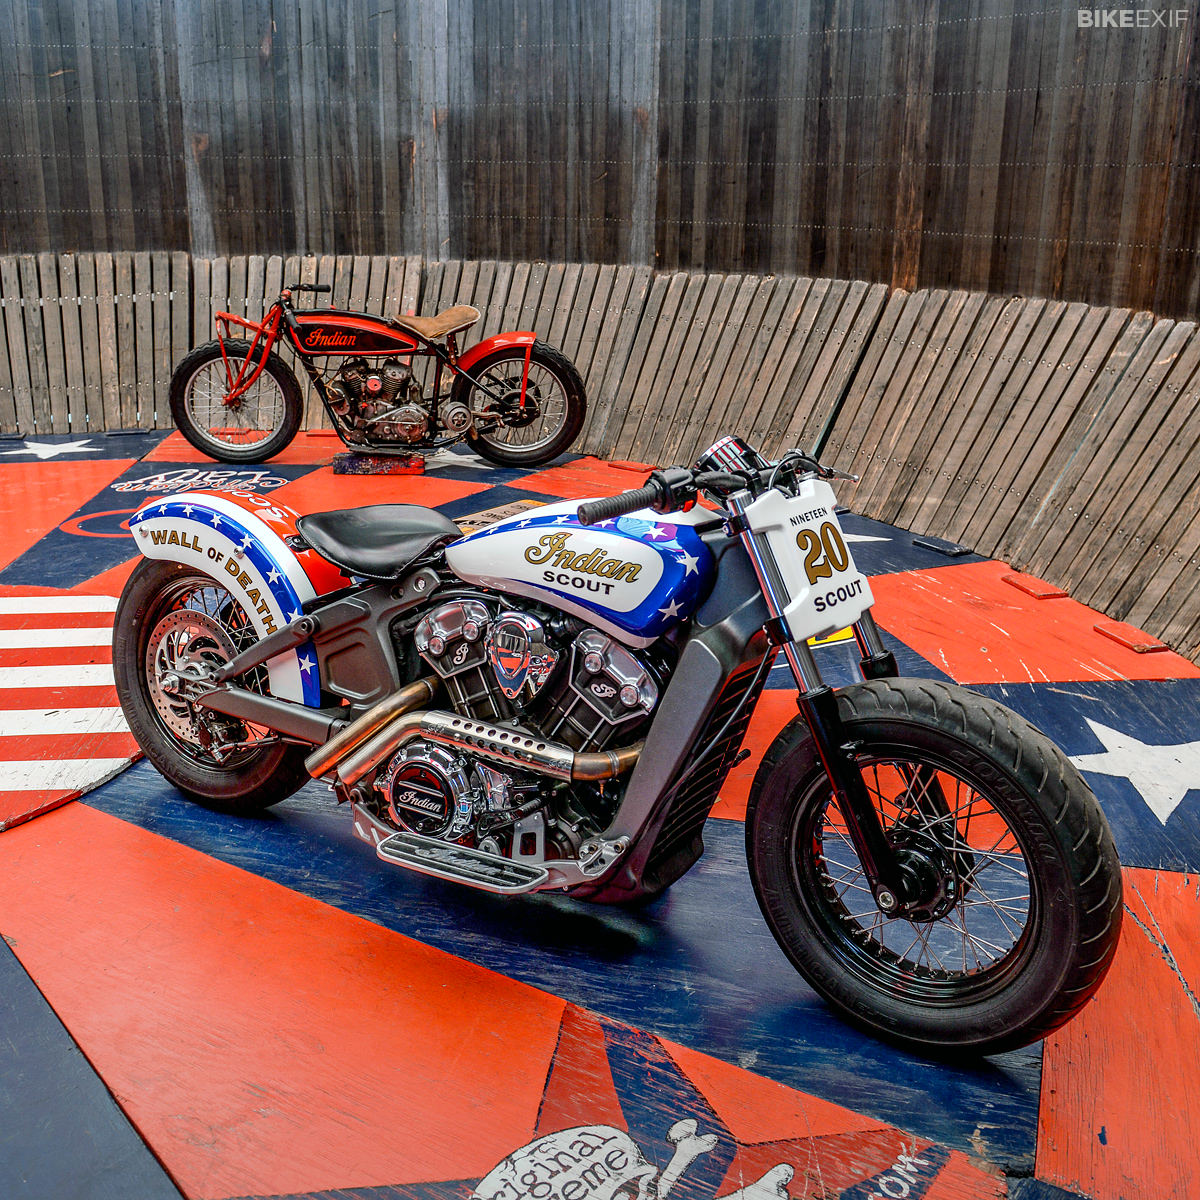 The current model Indian Scout has been converted into a Wall of Death motorcycle